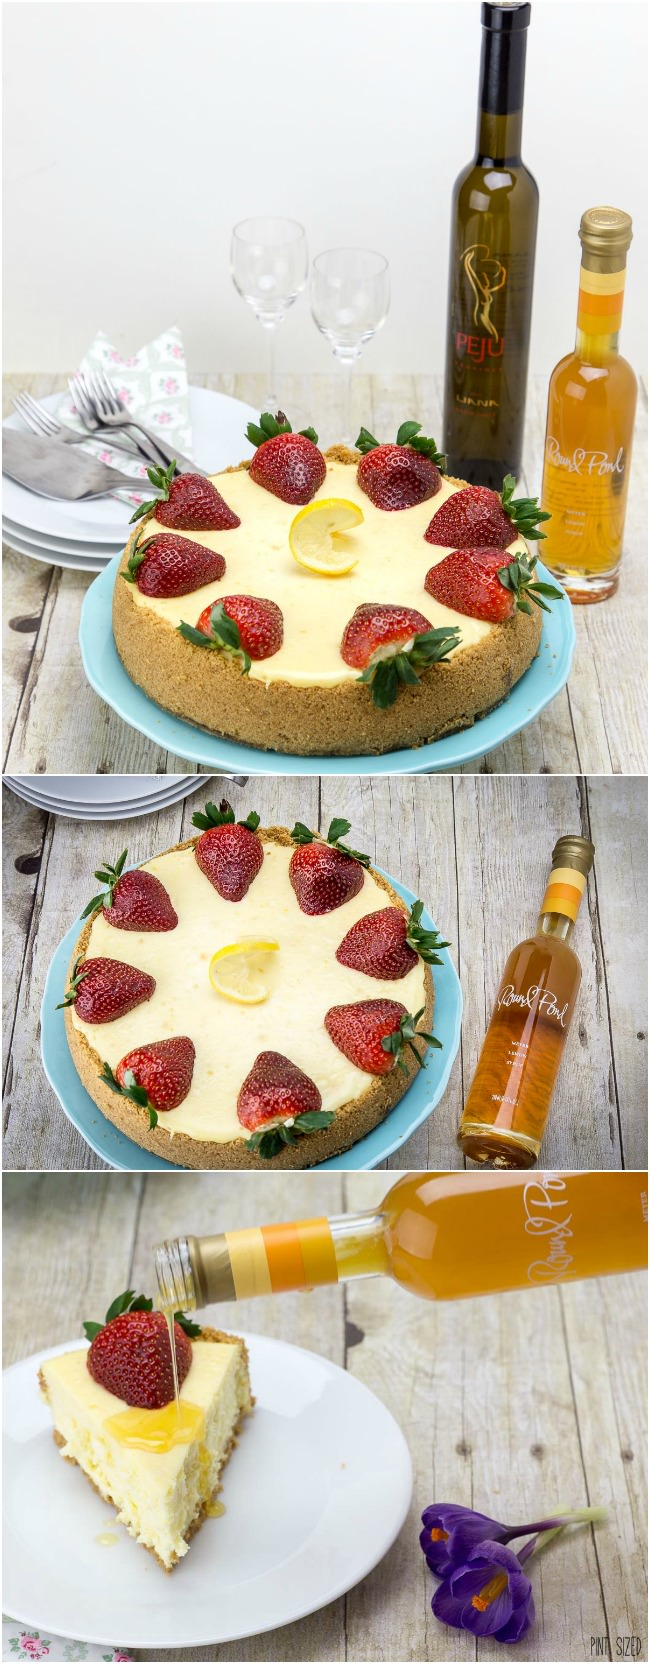 Sweet Meyer lemon artisan syrup from Round Pond Vineyards is the perfect topping to this lemon cheesecake.